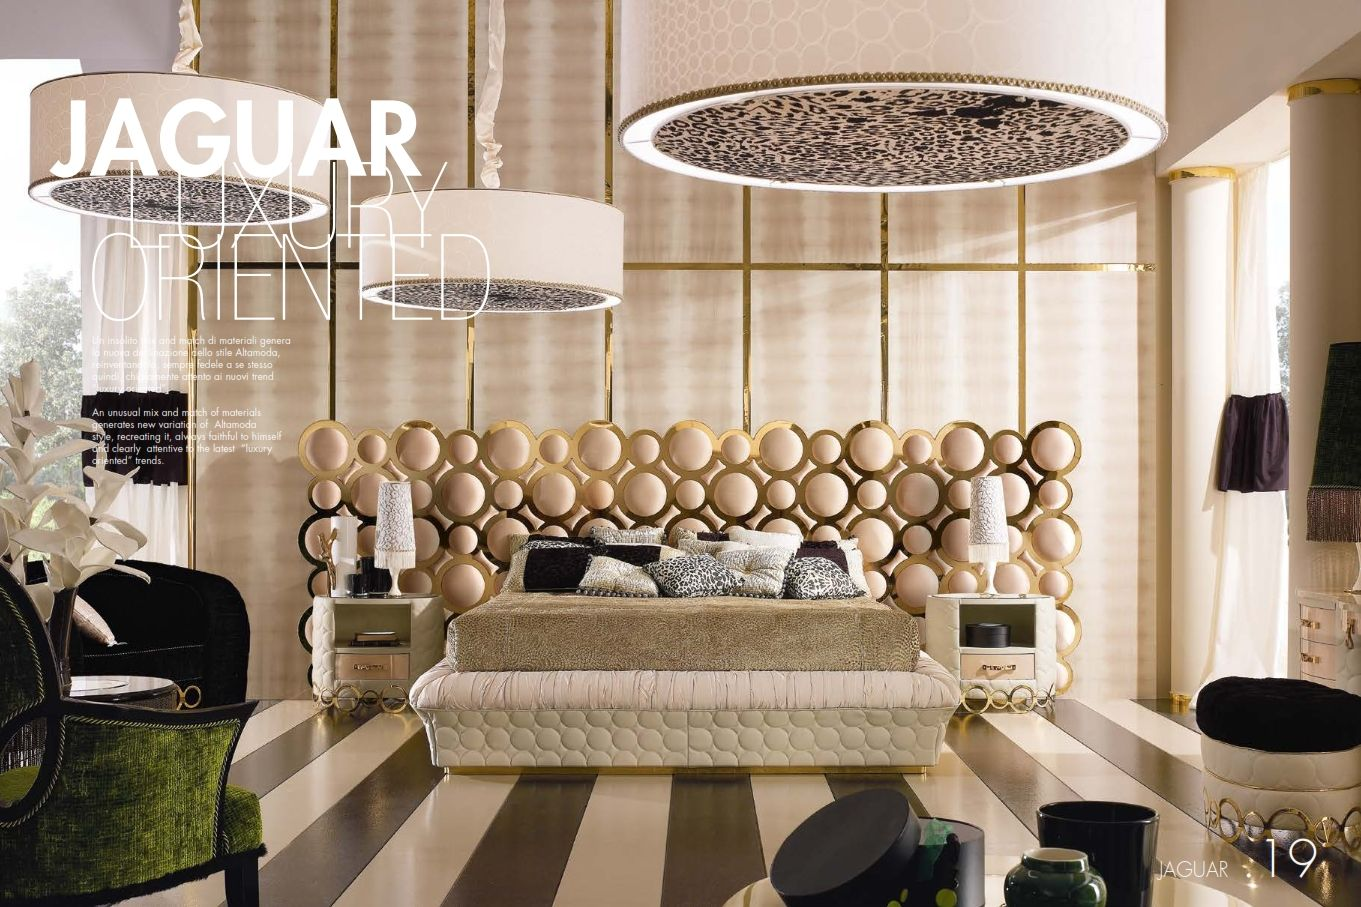 Luxurious Furniture Luxury Bedroom Alta Moda Jaguar